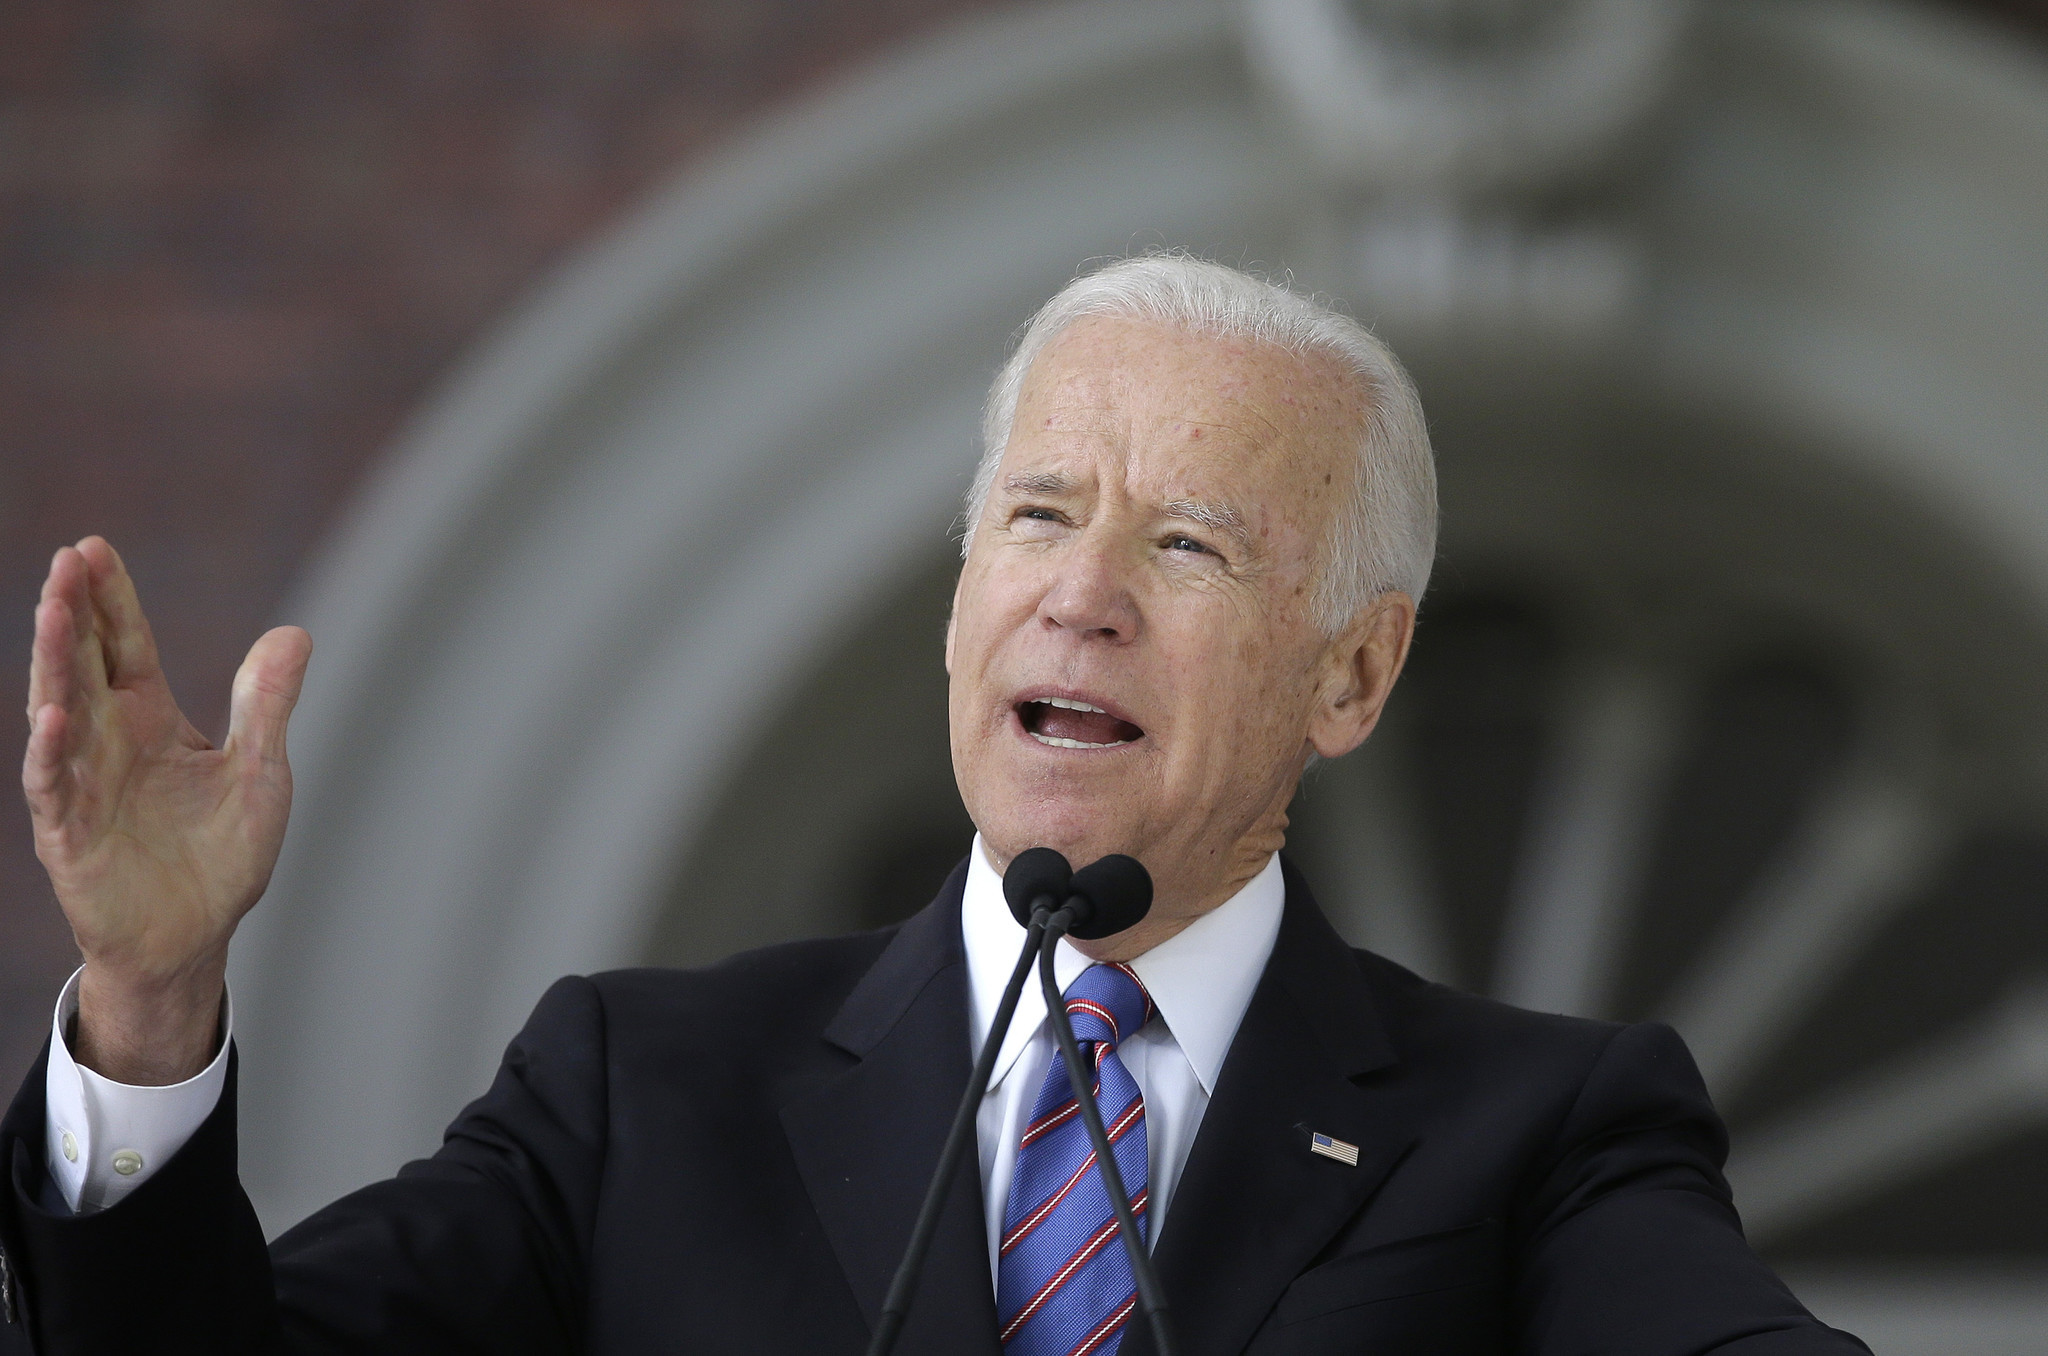 Joe Biden vs. Donald Trump in 2020? It could happen ...